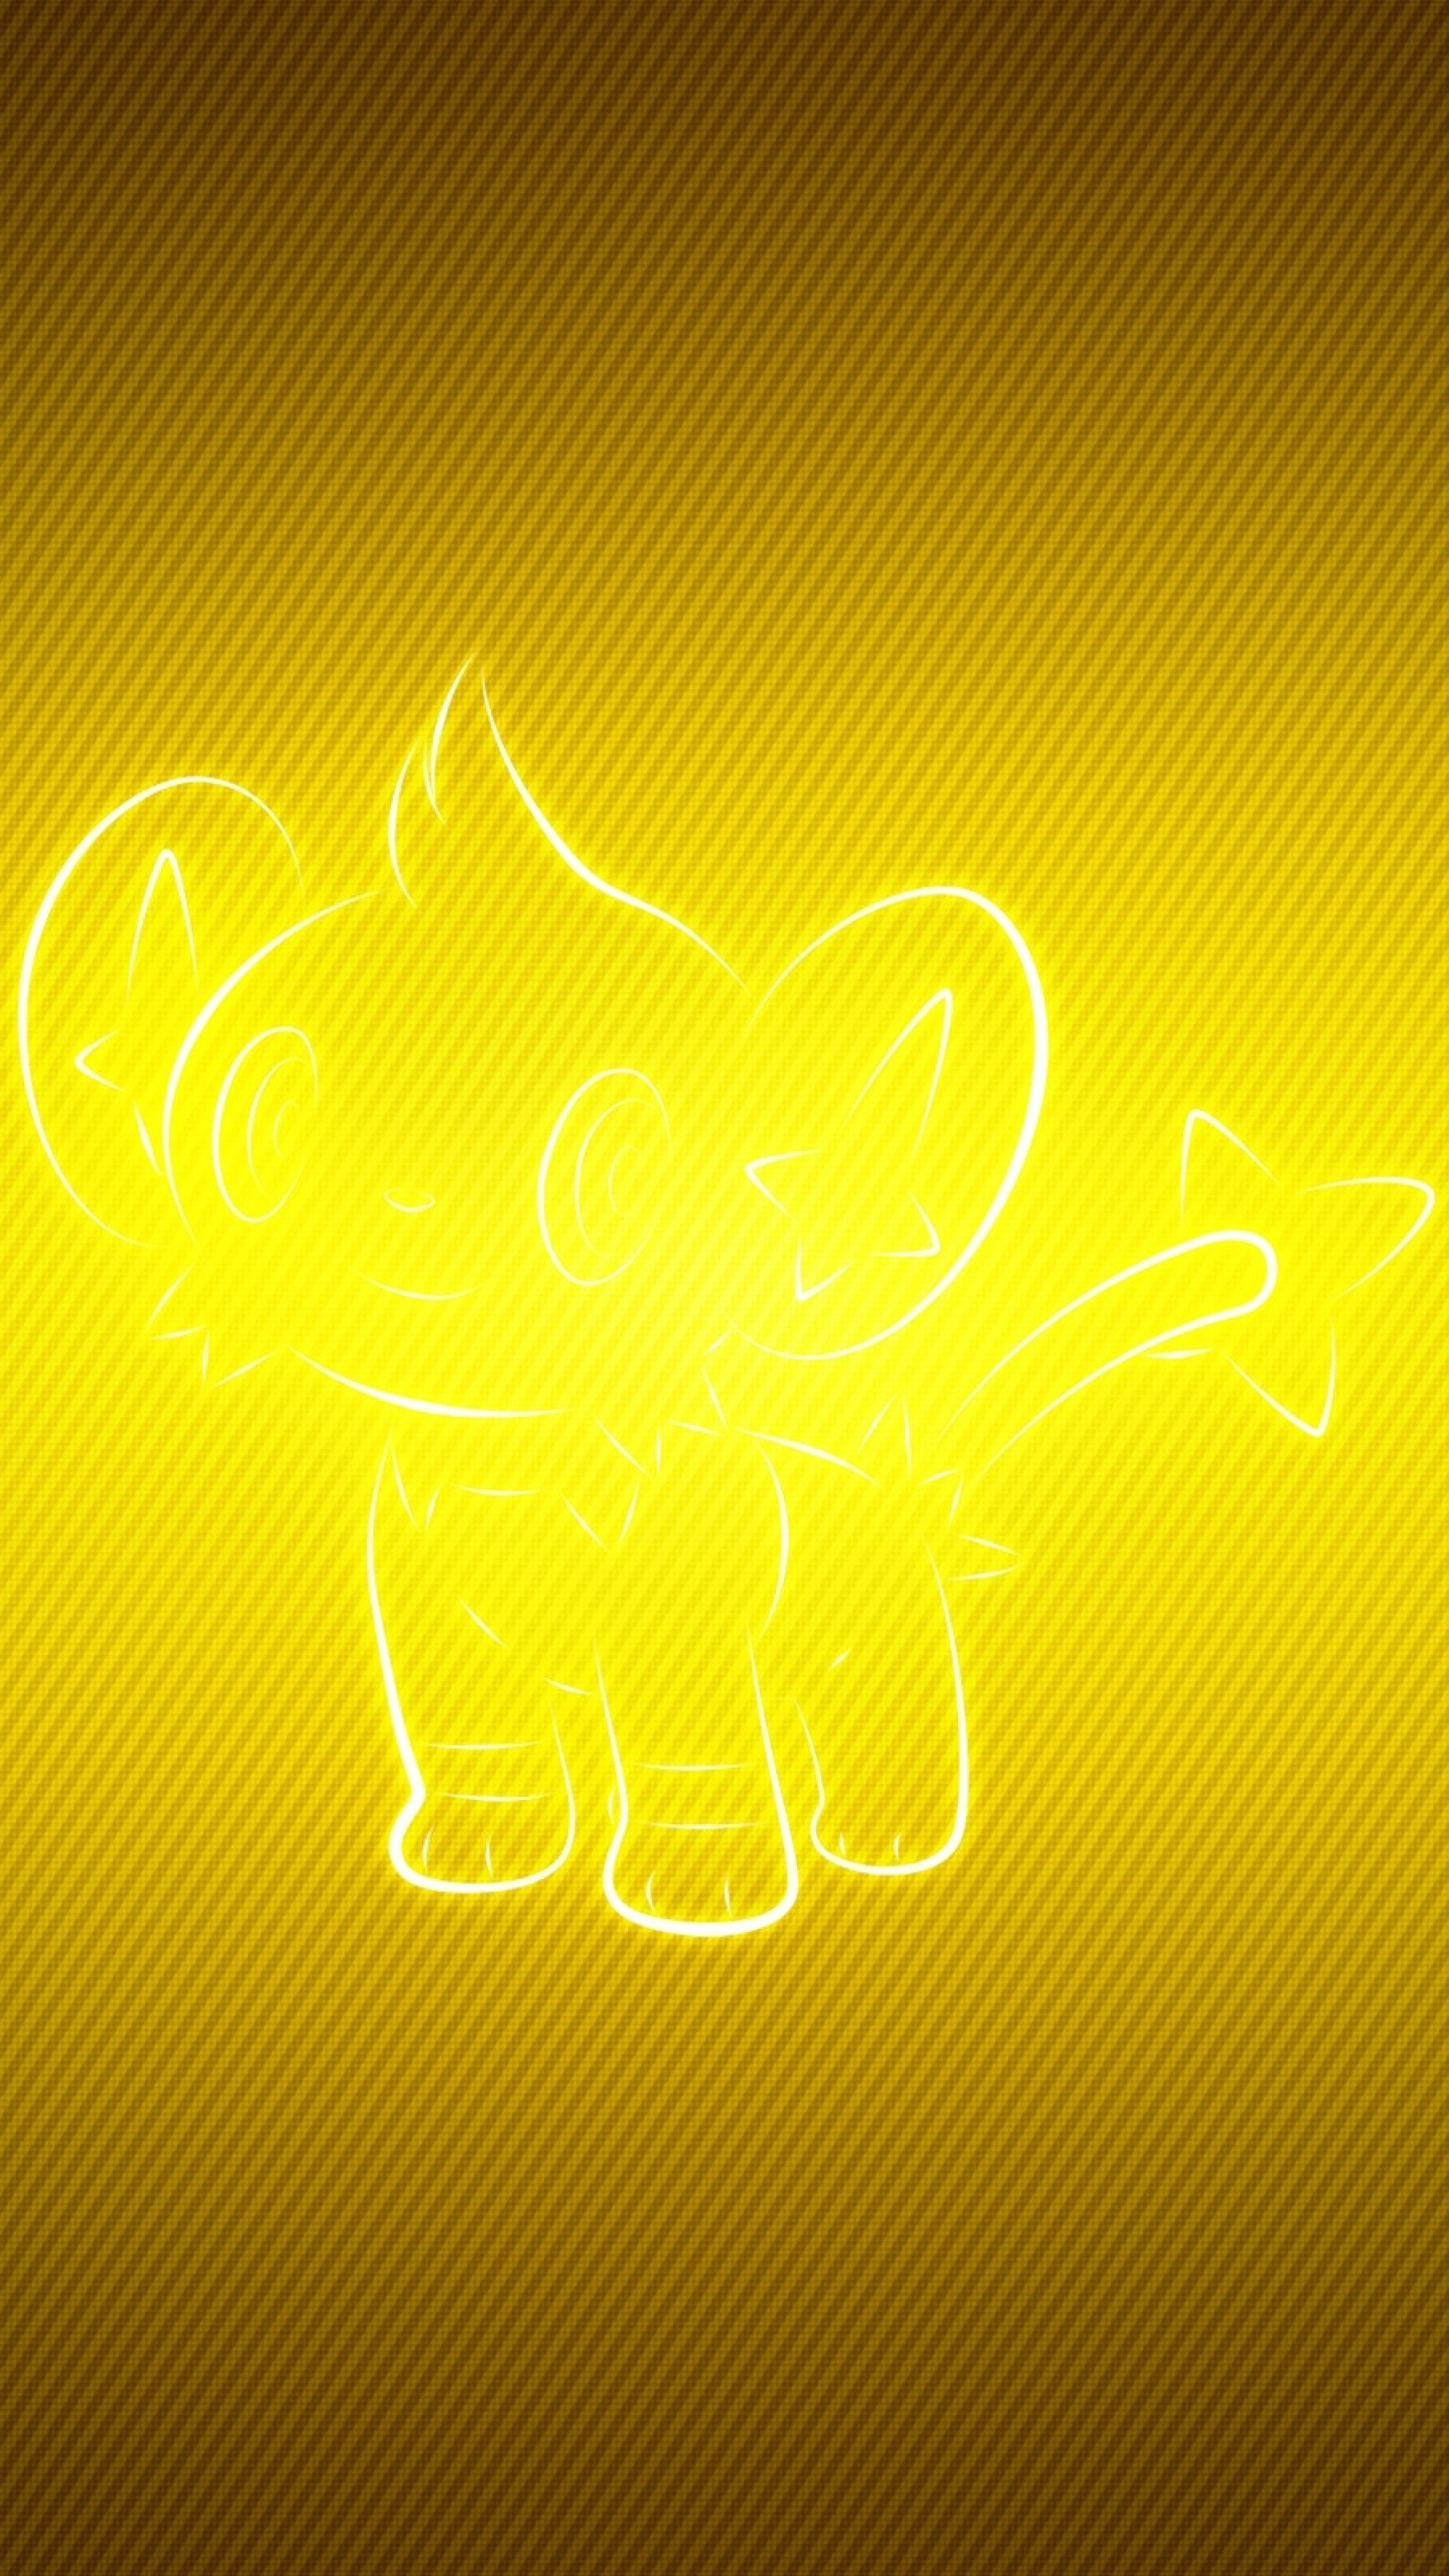 2160x3840 Shinx Pokemon Yellow Sony Xperia X Xz Z5 Premium Wallpaper Hd Vector 4k Wallpapers Images Photos And Background